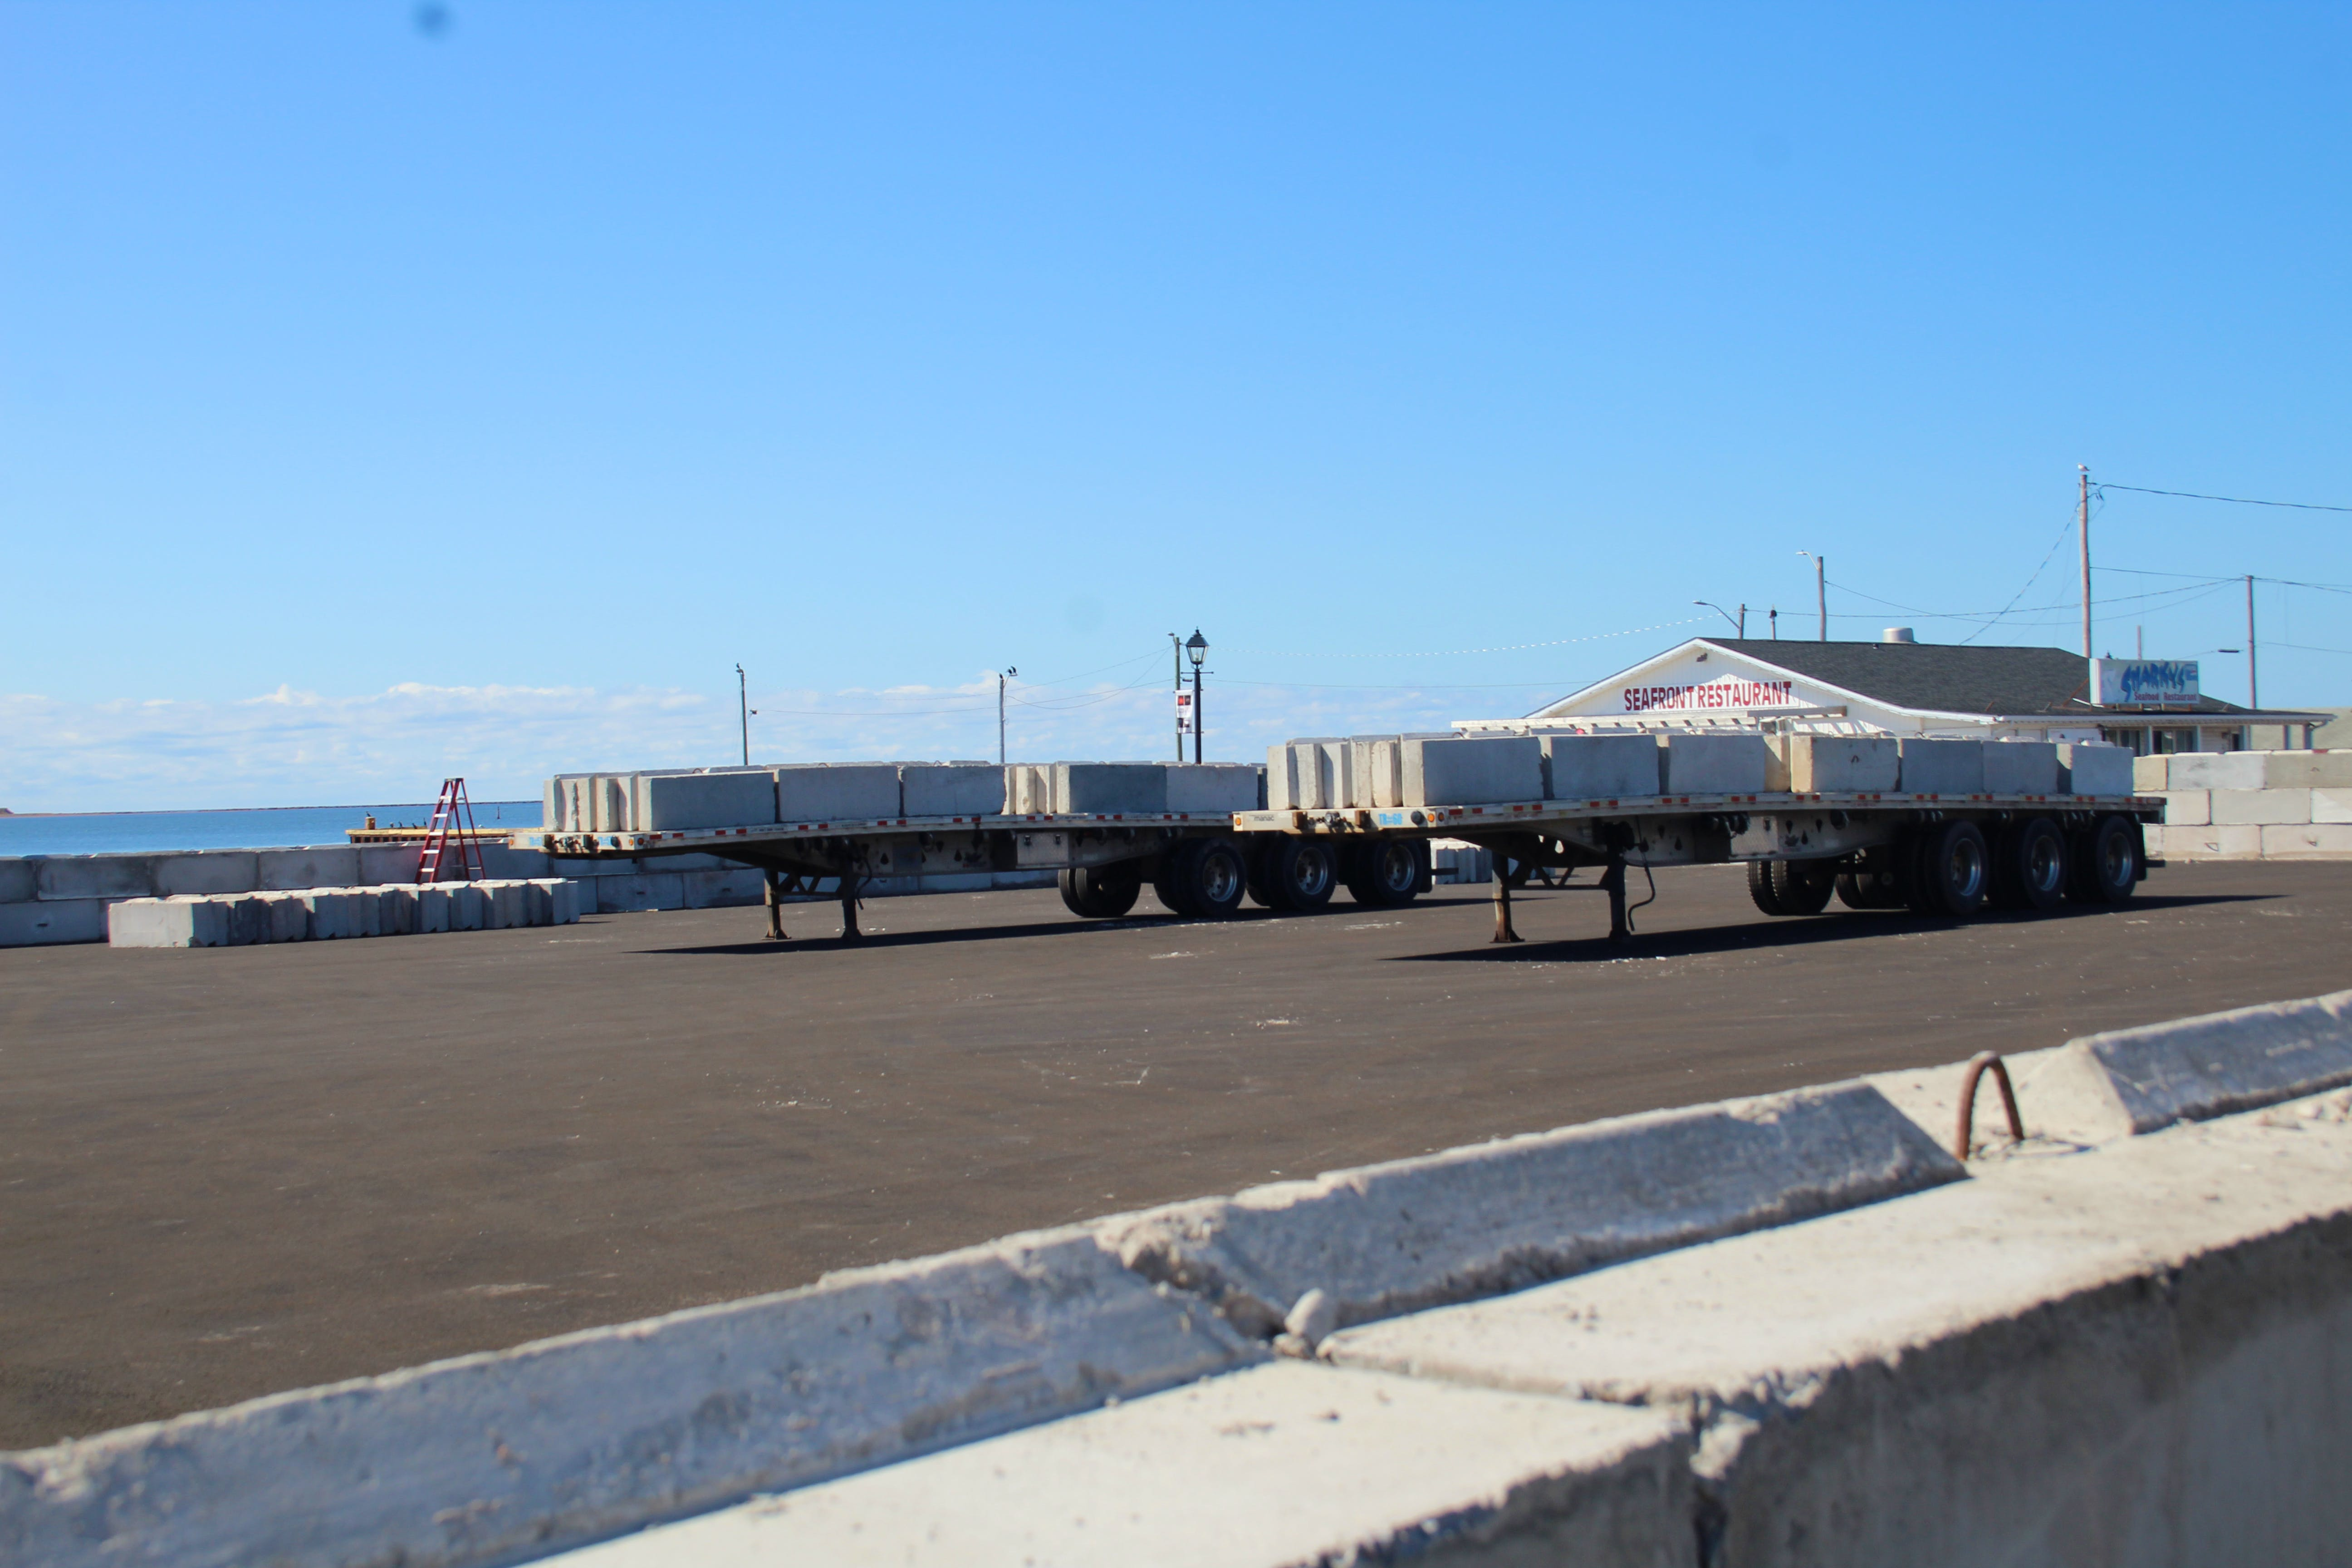 Summerside Port Corporation began removing the waterfront salt storage structure on Sept. 17. The blocks are being moved to a second location while the port works out a plan with the city.